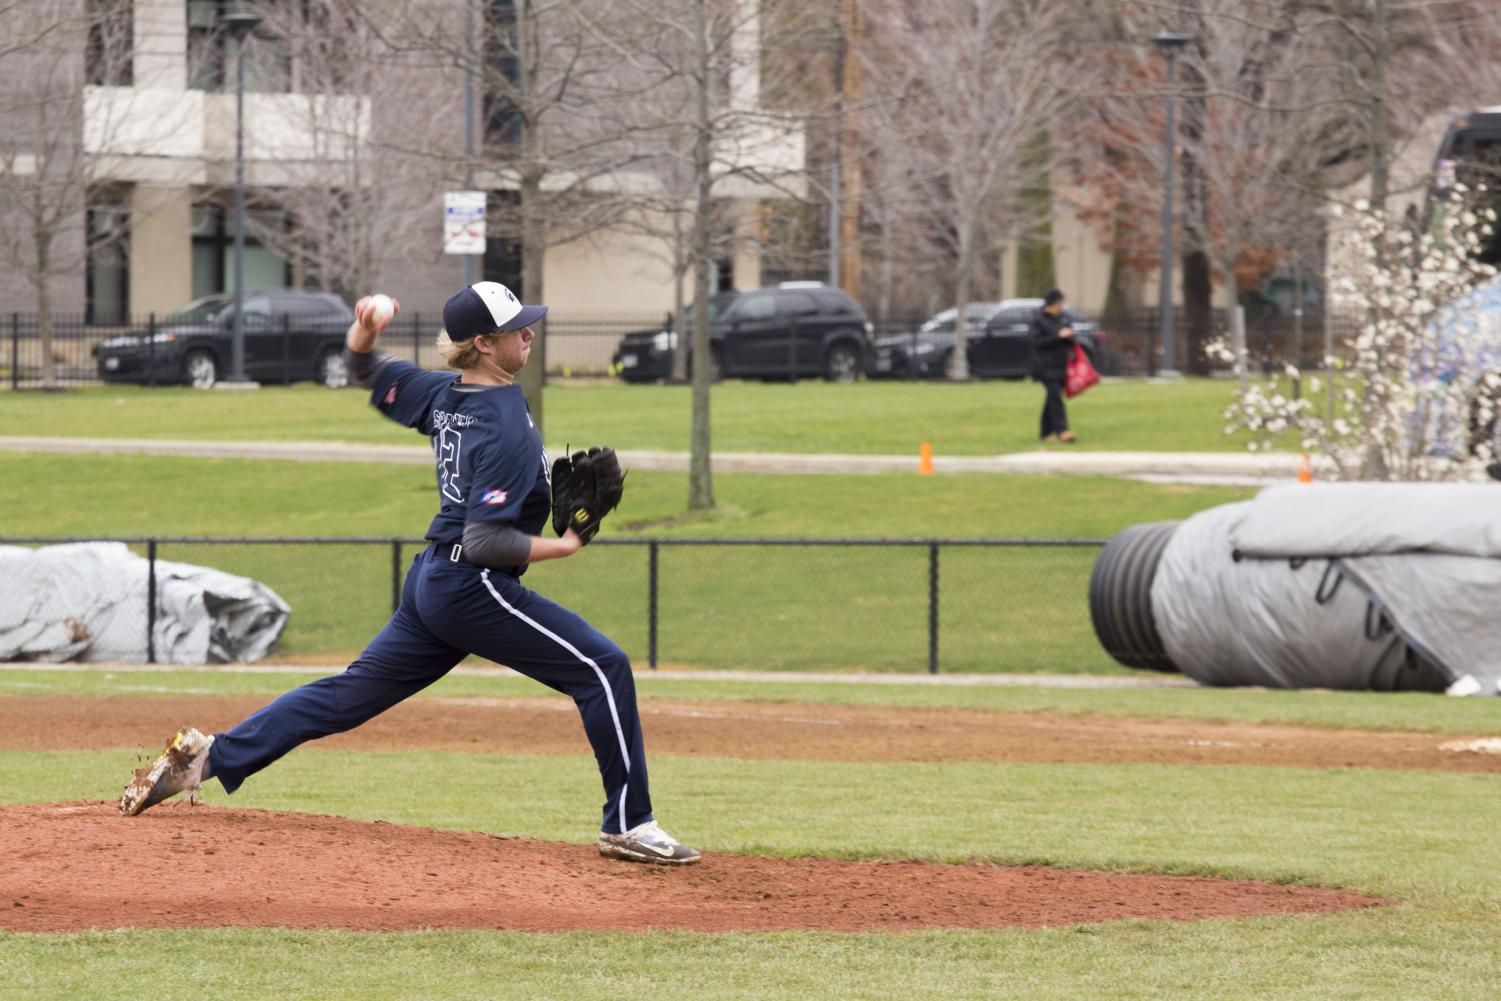 The baseball team is currently ranked No. 18 in Division III after a hot 10-1 start. During this span, the team defeated two top five teams in the nation.